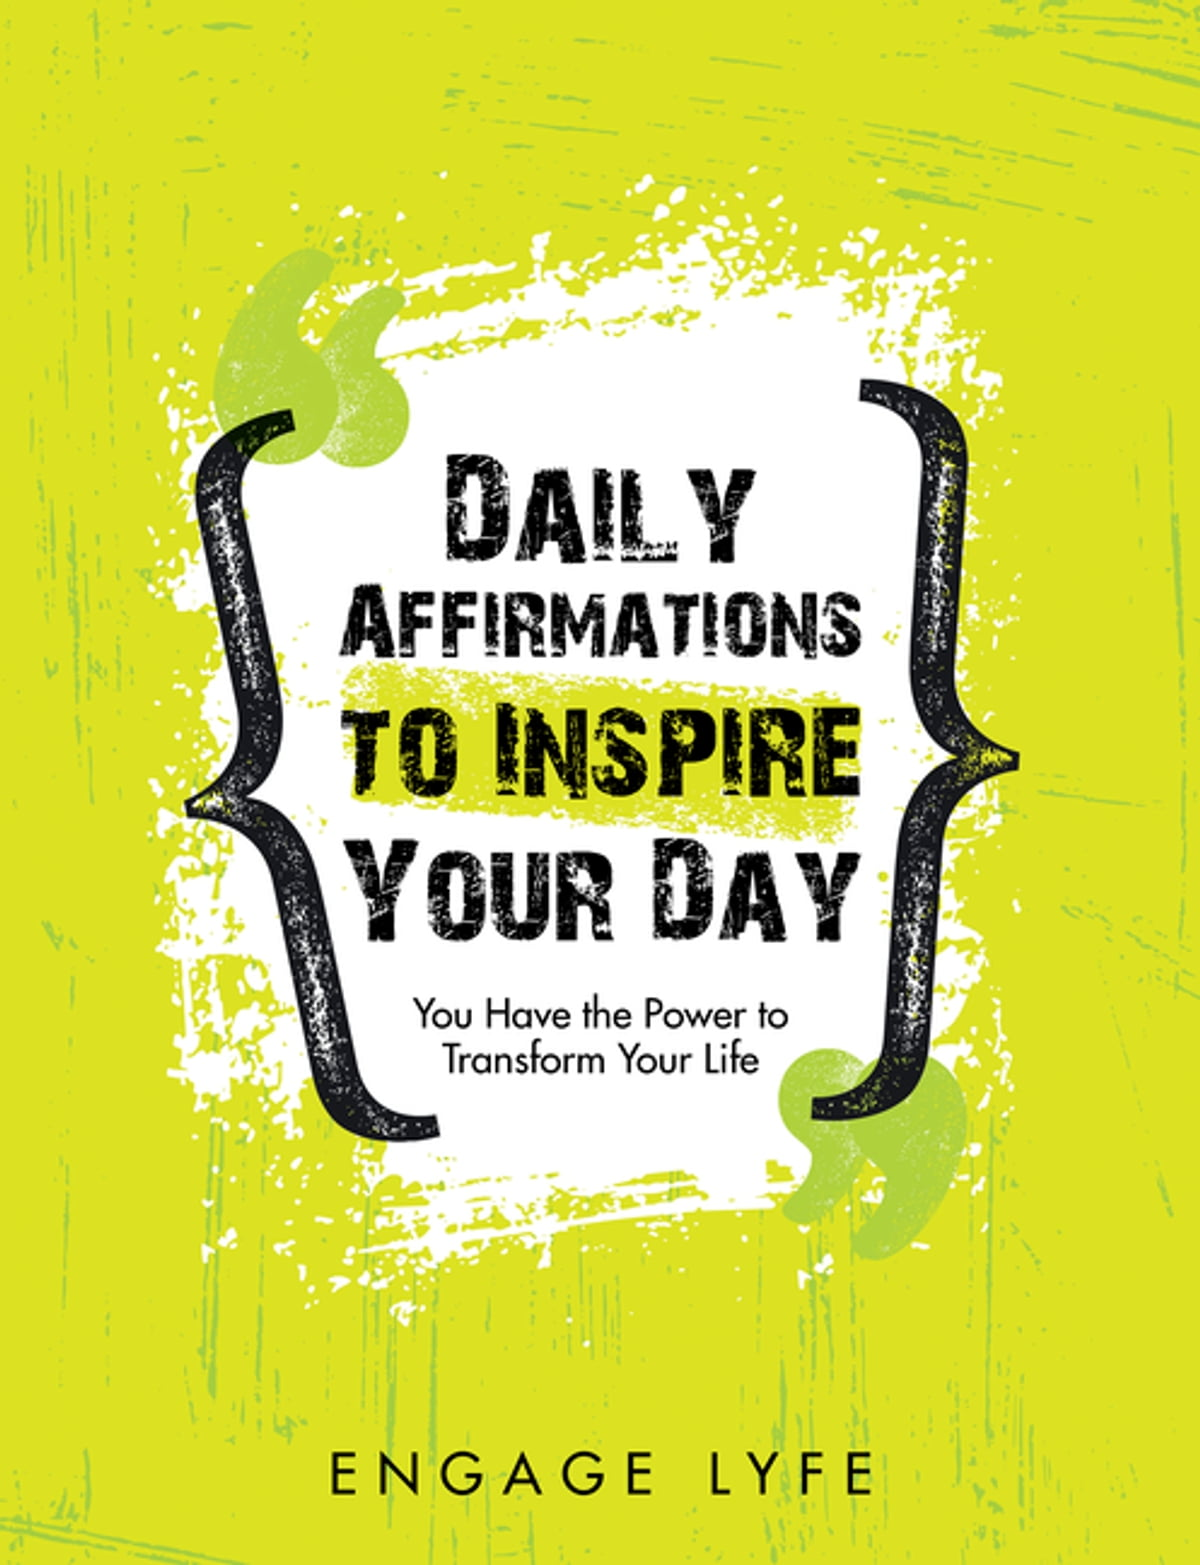 Daily Affirmations to Inspire Your Day eBook by Engage Lyfe - 9781982208684 | Rakuten Kobo Greece